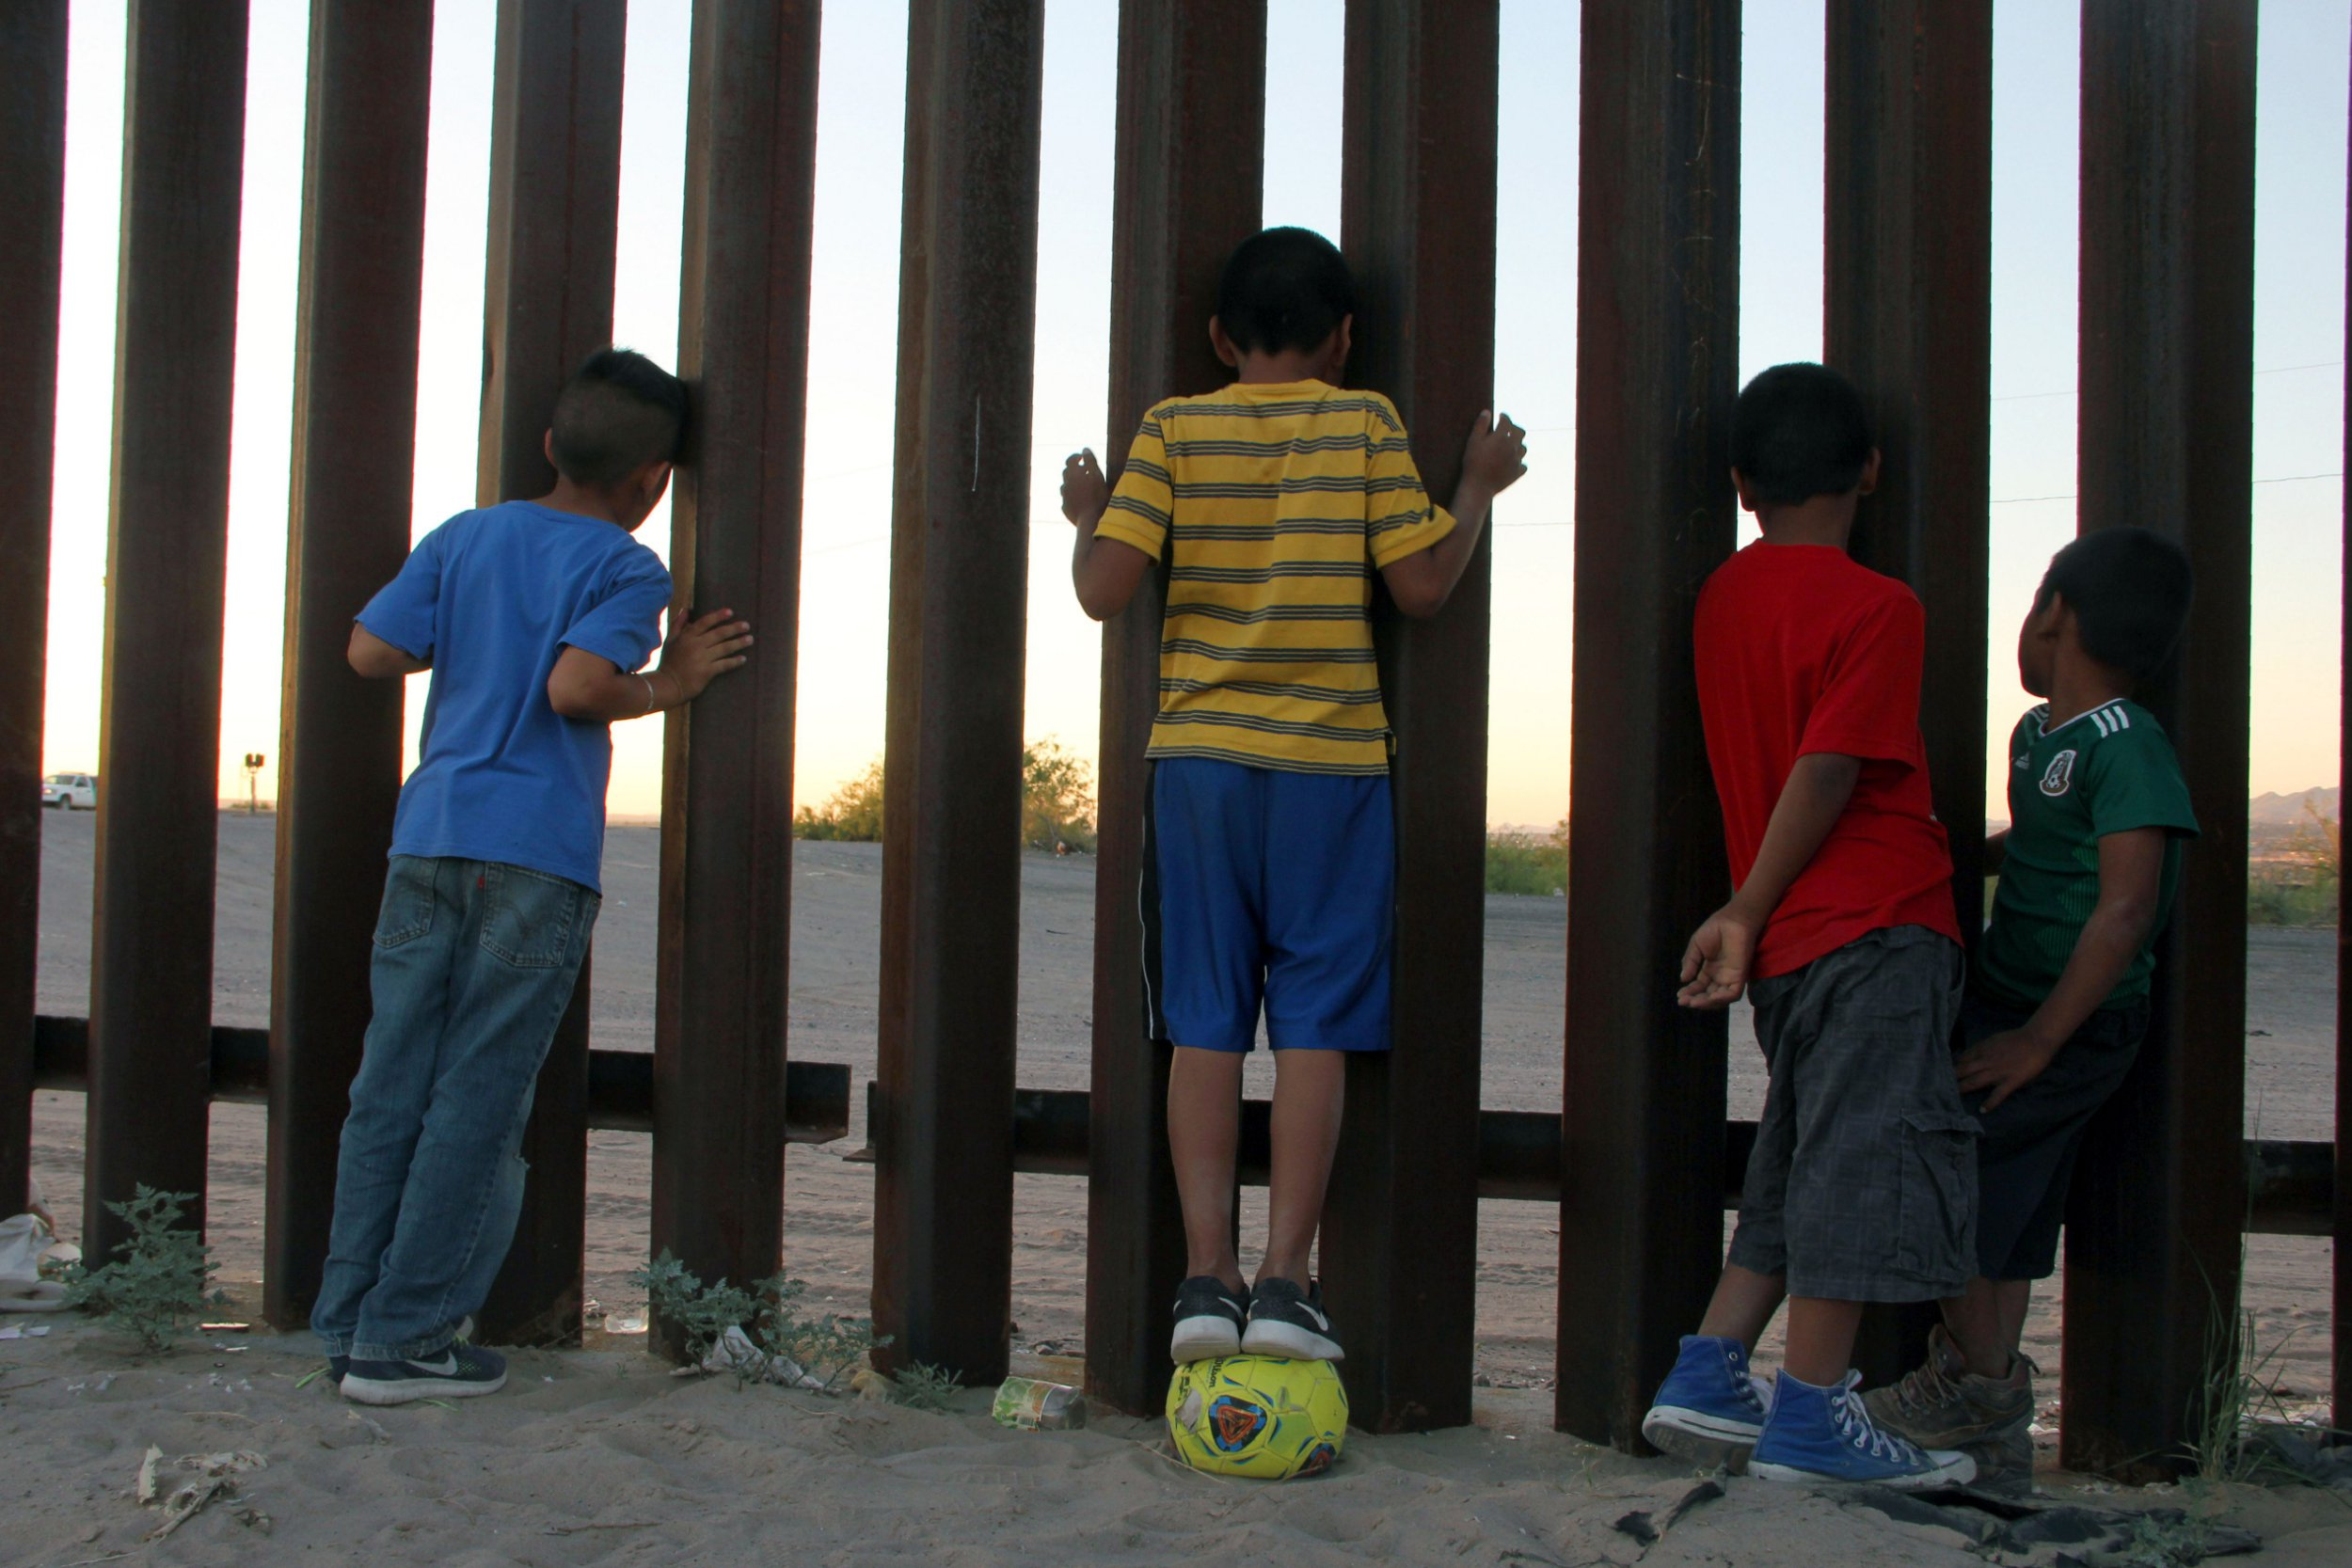 Children look through the border fence outside their home at the Anapra zone between the border of Mexico and the US near Sunland Park, New Mexico, in Ciudad Juarez, Chihuahua State, Mexico, on June 22, 2018. / AFP PHOTO / HERIKA MARTINEZHERIKA MARTINEZ/AFP/Getty Images